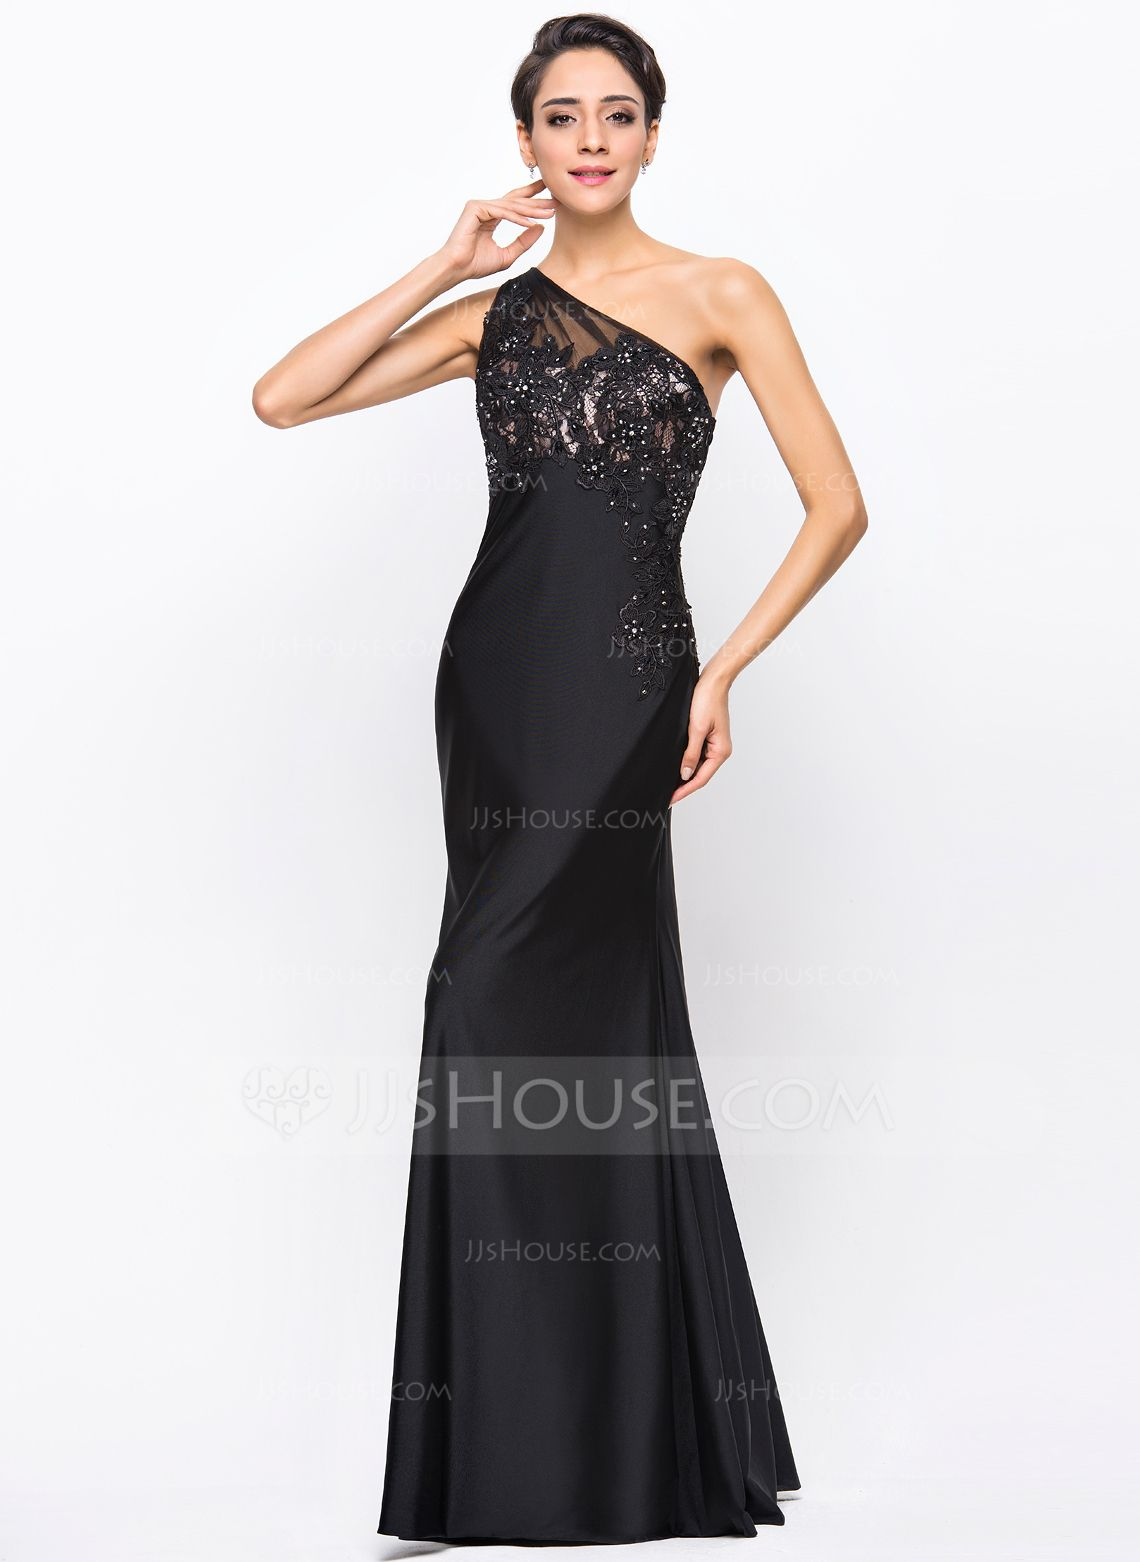 2184fcb7c2db Trumpet/Mermaid One-Shoulder Floor-Length Tulle Charmeuse Jersey Evening  Dress With Beading Appliques Lace (017056114) - JJsHouse